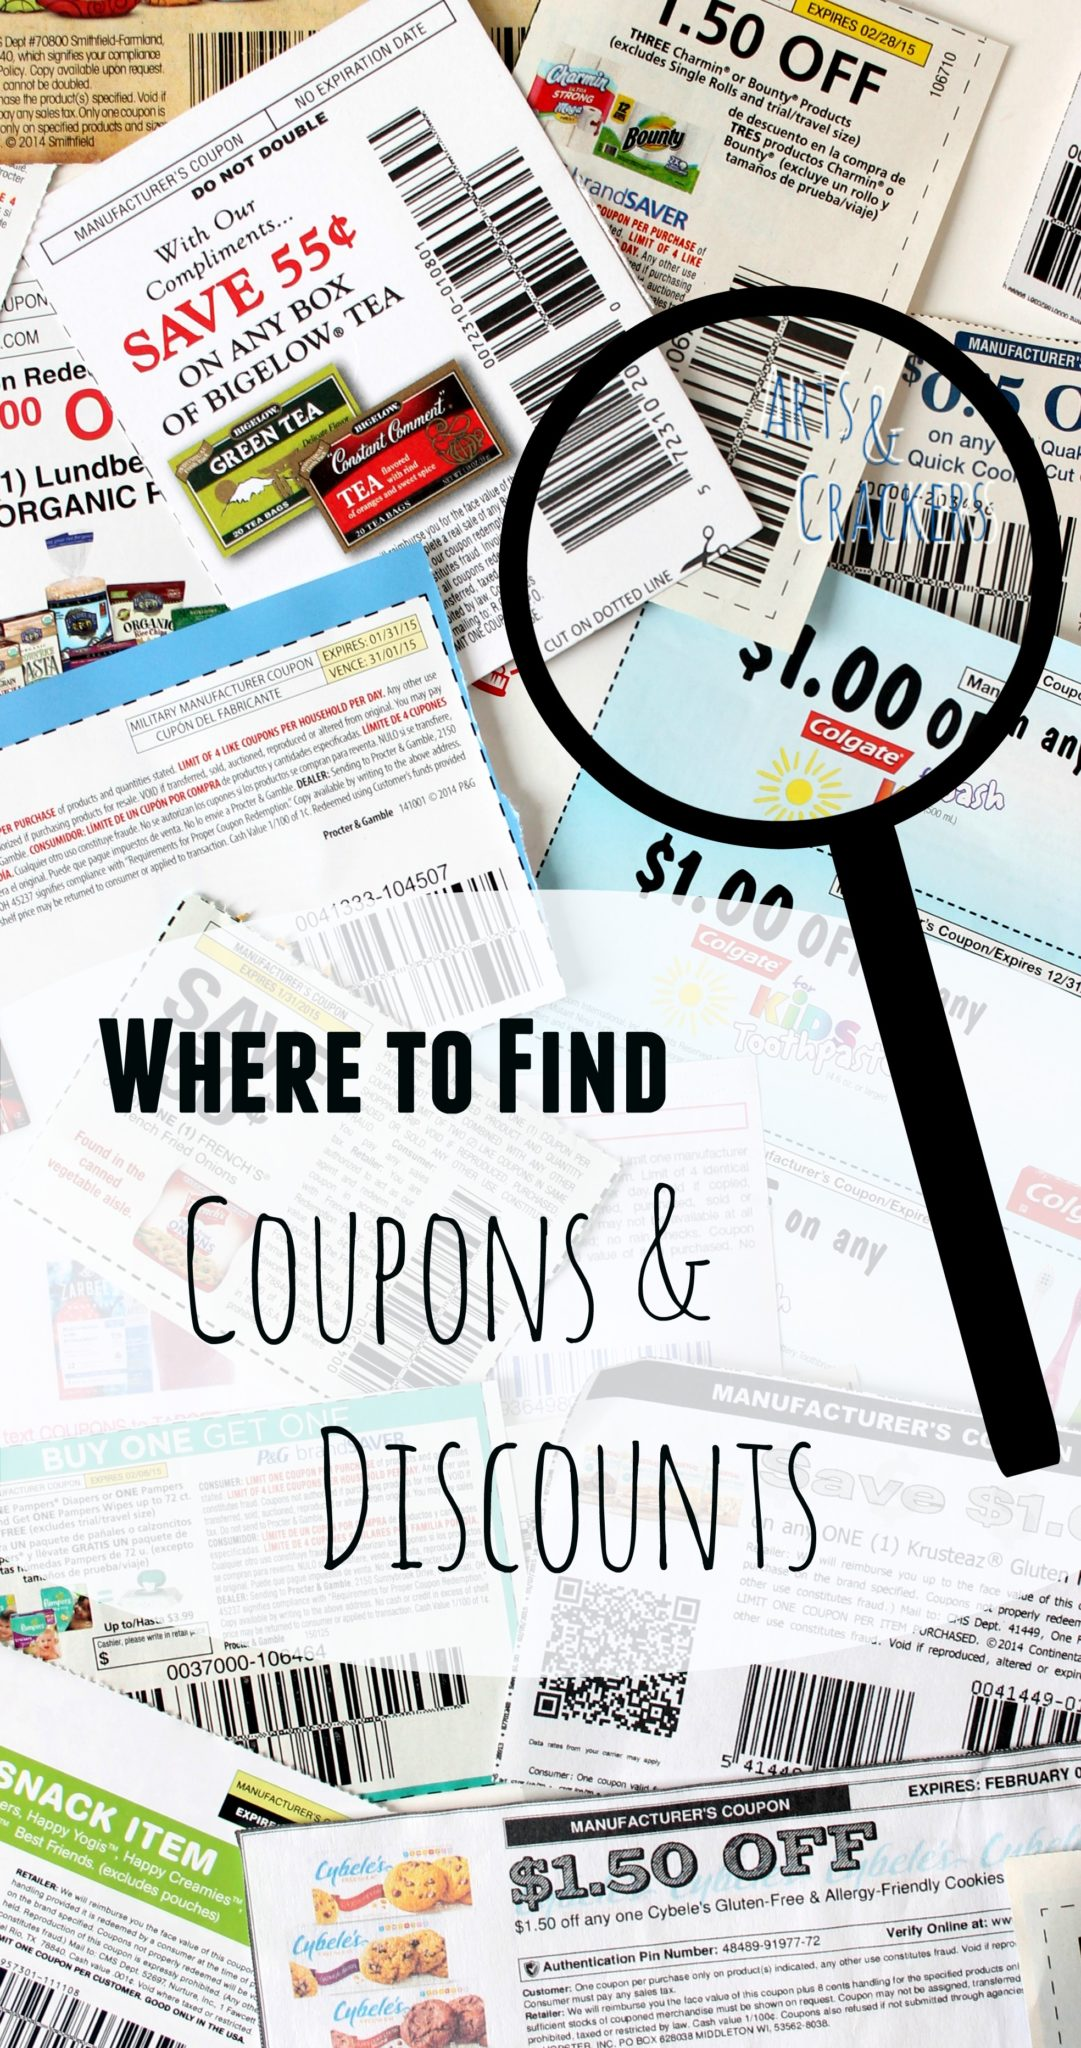 Where to Find Coupons and Discounts Reference Guide